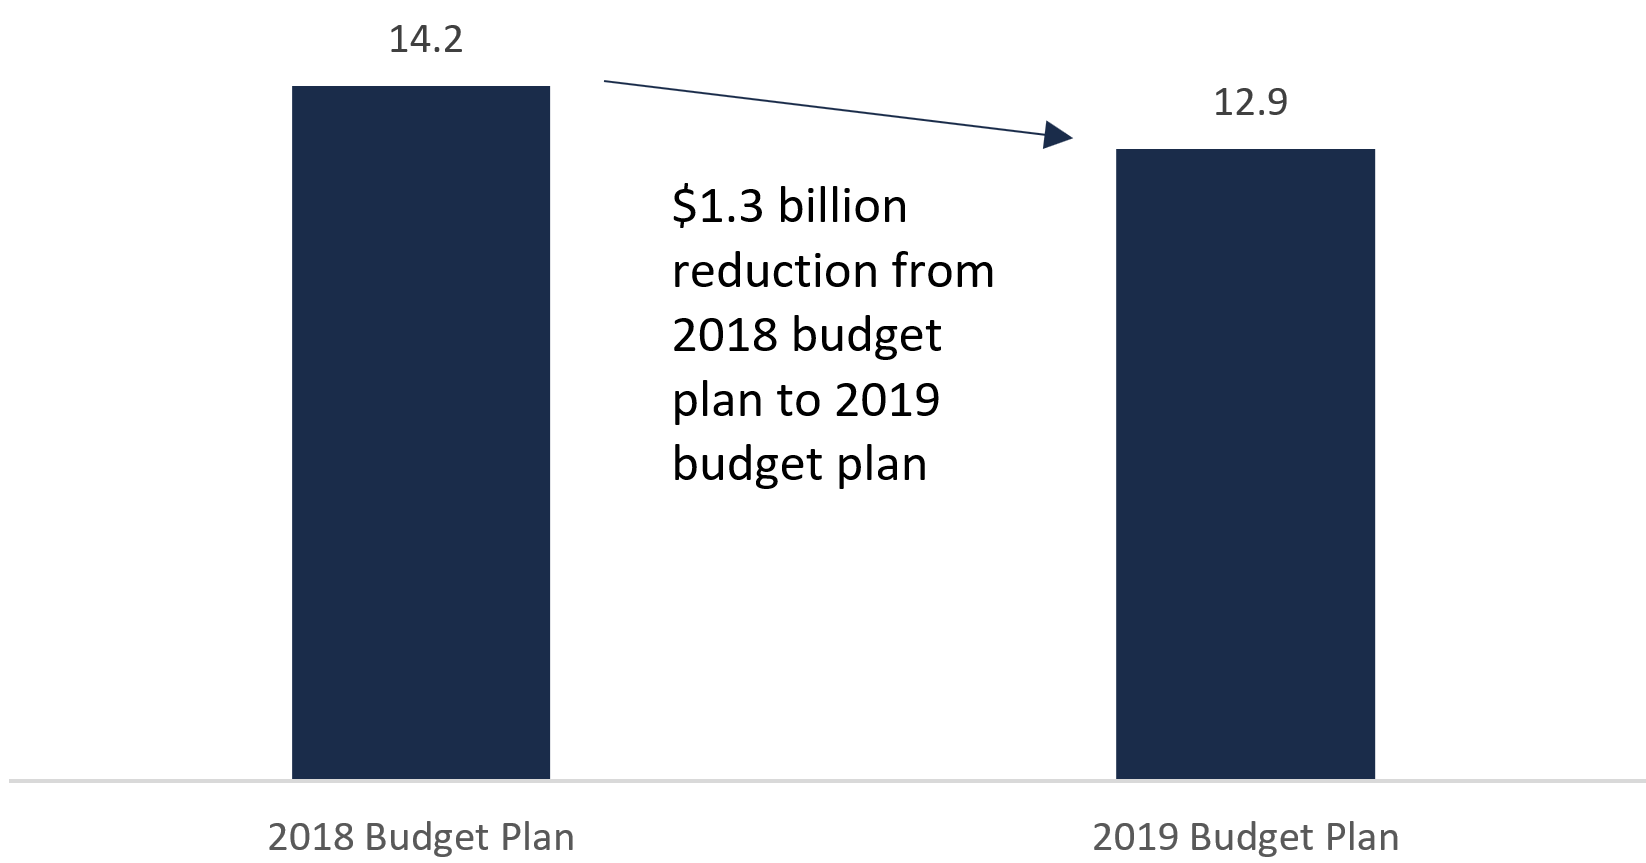 This figure shows the projected highways capital spending from 2019-20 to 2023-24 as stated in the 2018 budget plan and the 2019 budget plan in billions of dollars. The figure shows that the 2018 budget plan highways capital spending projection was $14.2 billion and the highways capital spending projection from the 2019 budget plan is $12.9 billion. This chart highlights that there is a $1.3 billion reduction from the 2018 budget plan to the 2019 budget plan.